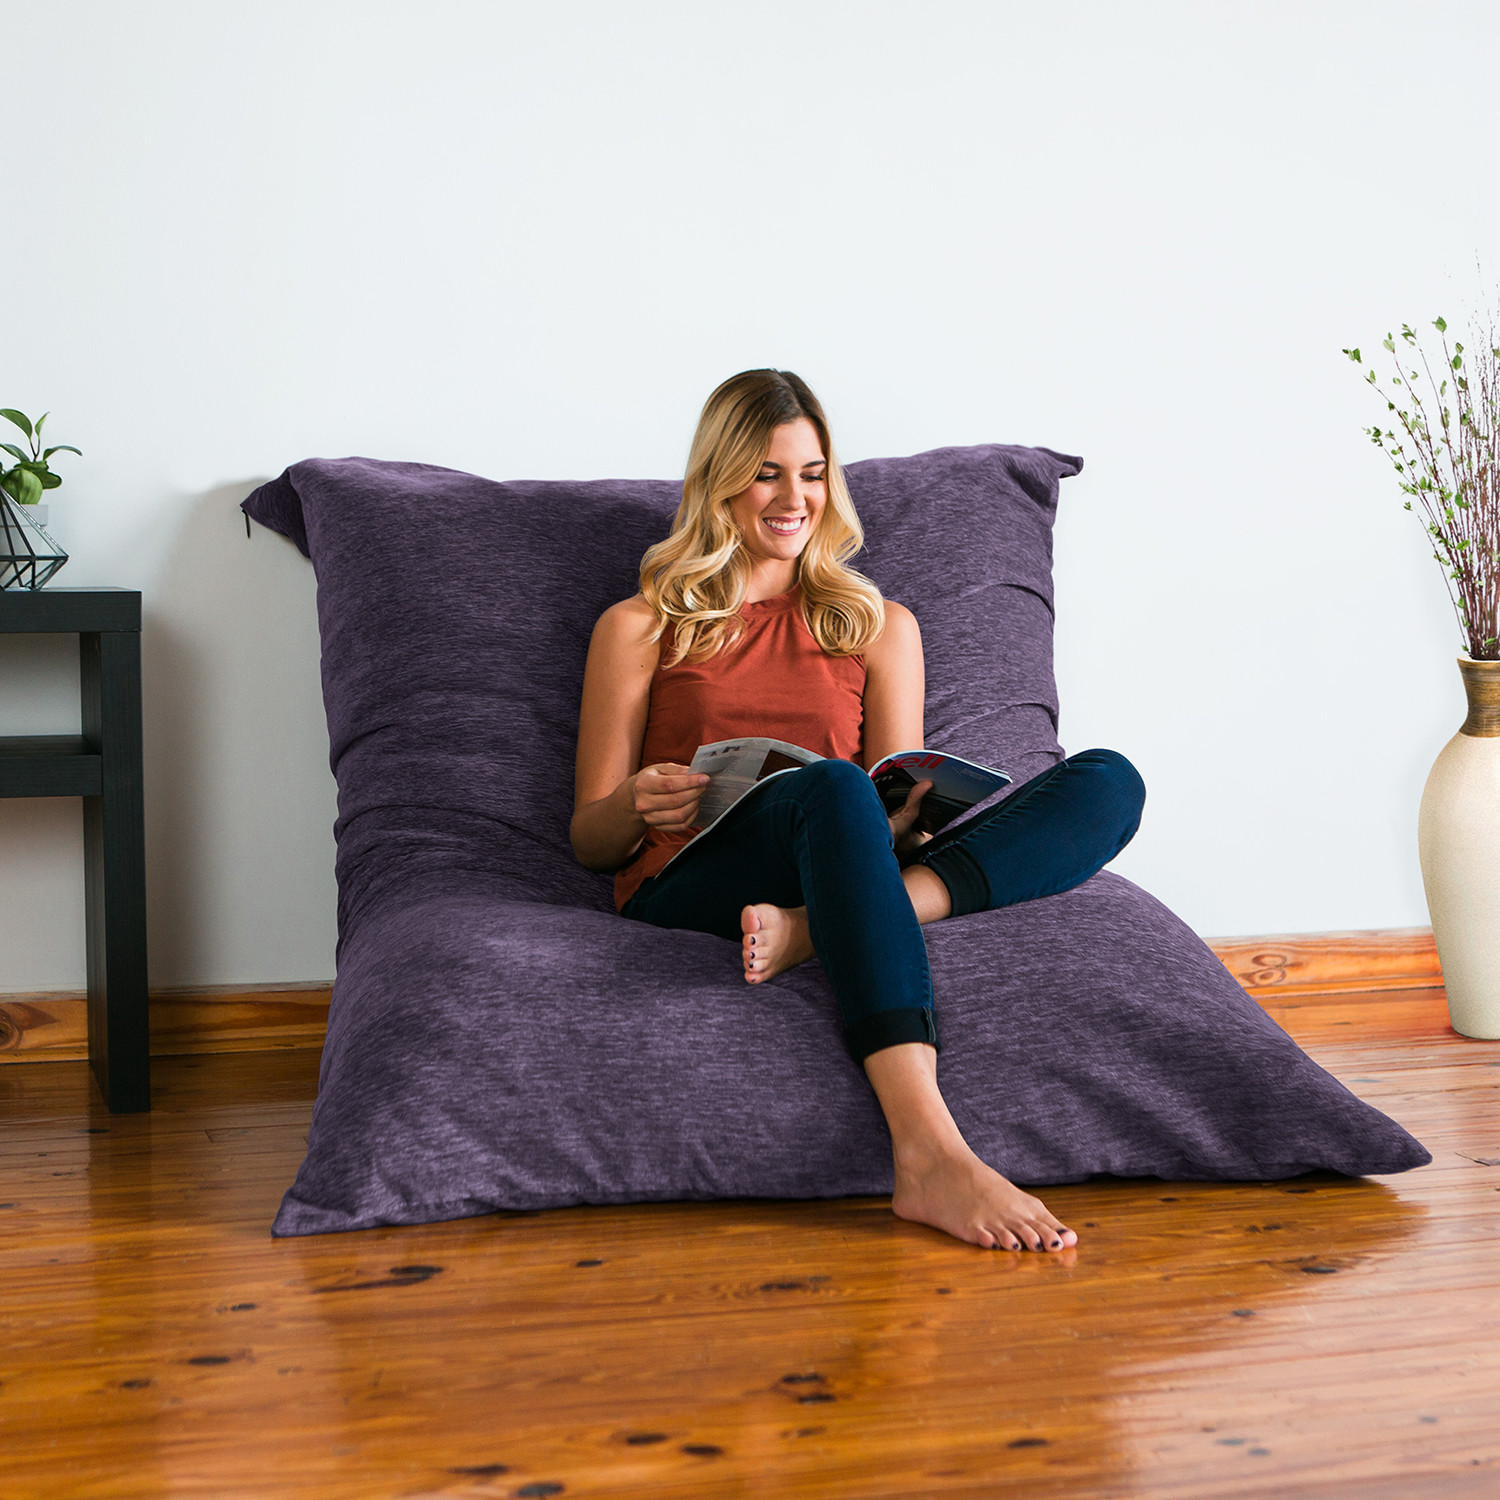 Jaxx Floor Pillows : Floor Pillow Lounger (Plum) - Jaxx - Touch of Modern